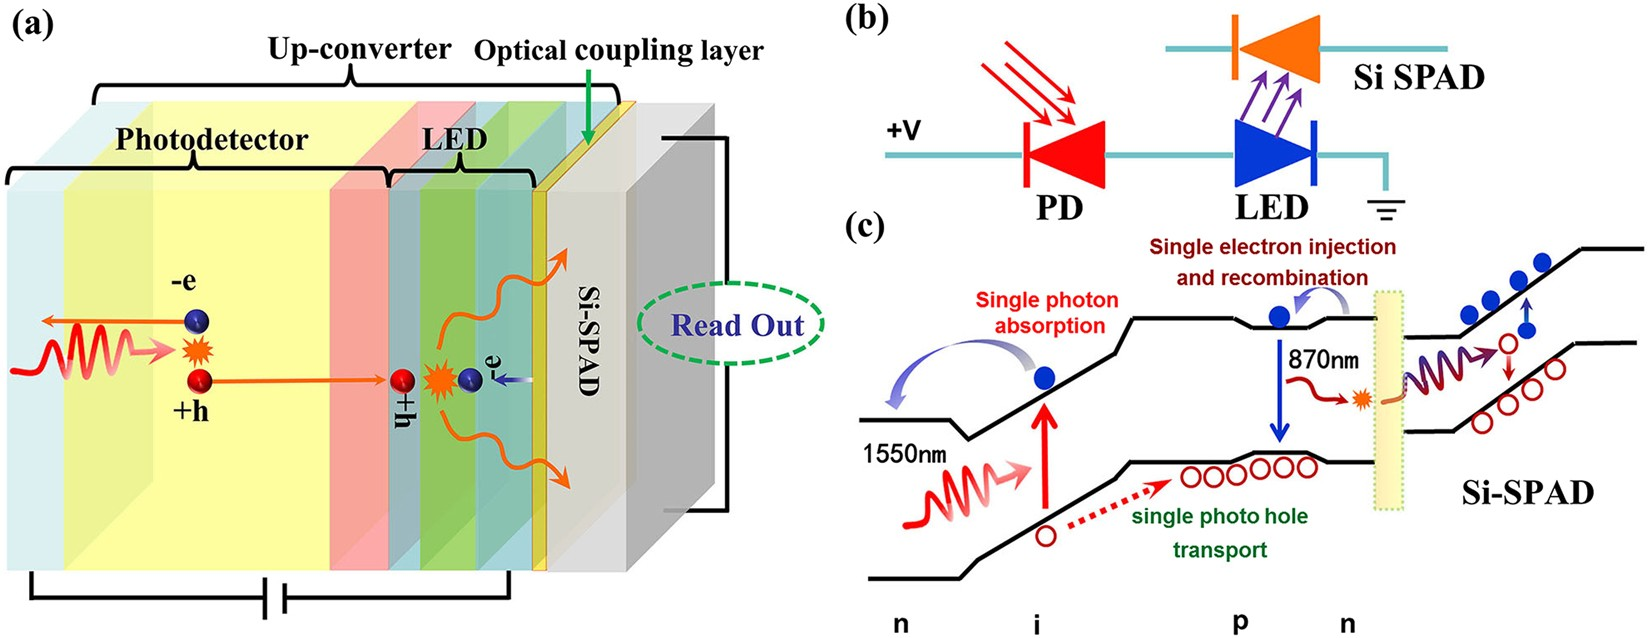 Infrared Single Photon Detector Based On Optical Up Converter At Figure 1 Simplified Red And Led Bias Control Circuit 1550 Nm Scientific Reports